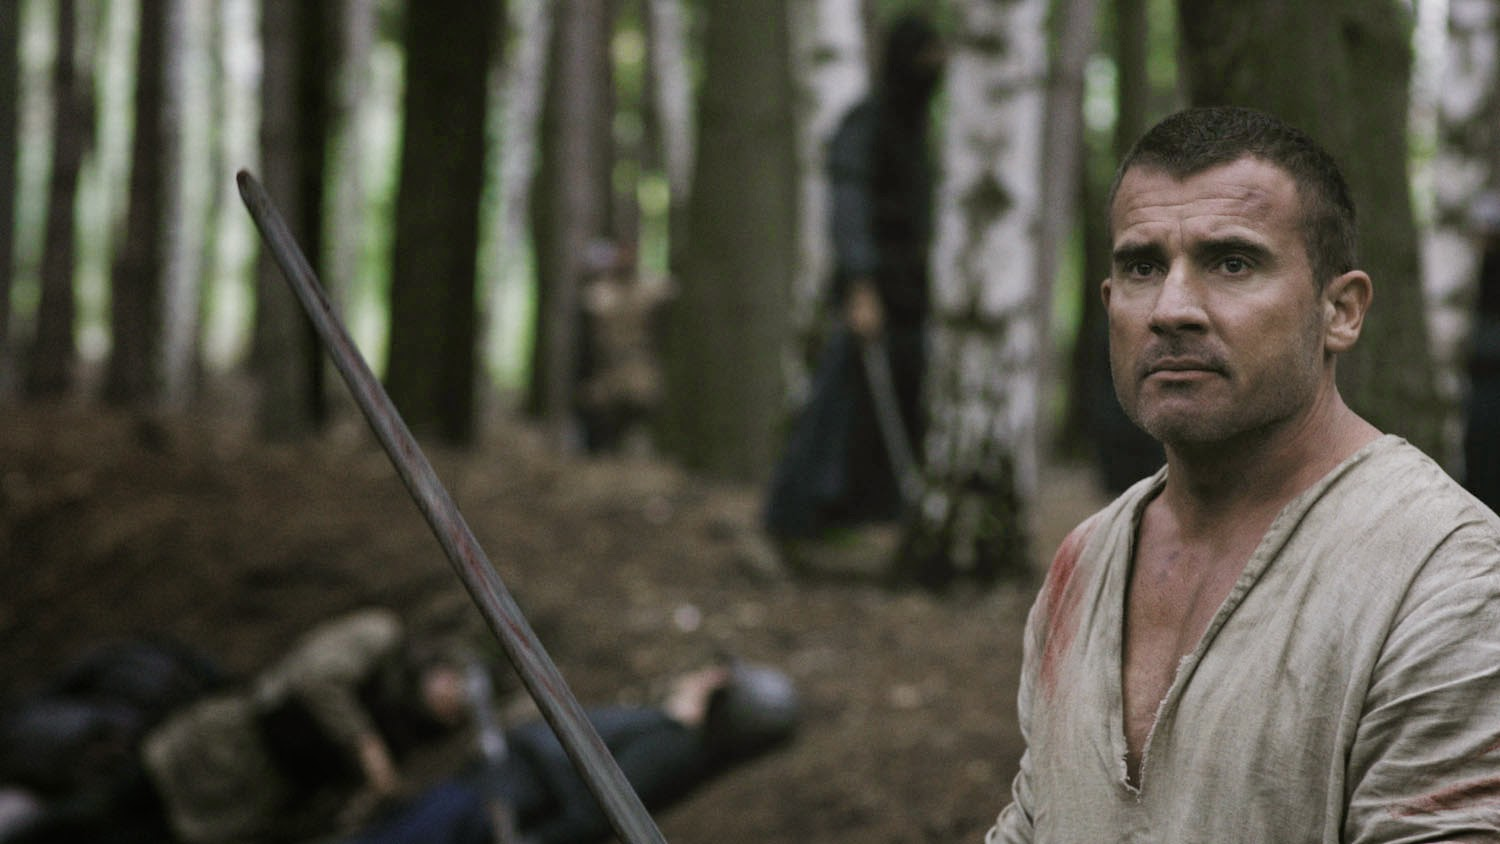 Dominic Purcell as the hitman Hazen Kane displaced into a fantasy world in In the Name of the King 3 (2014)